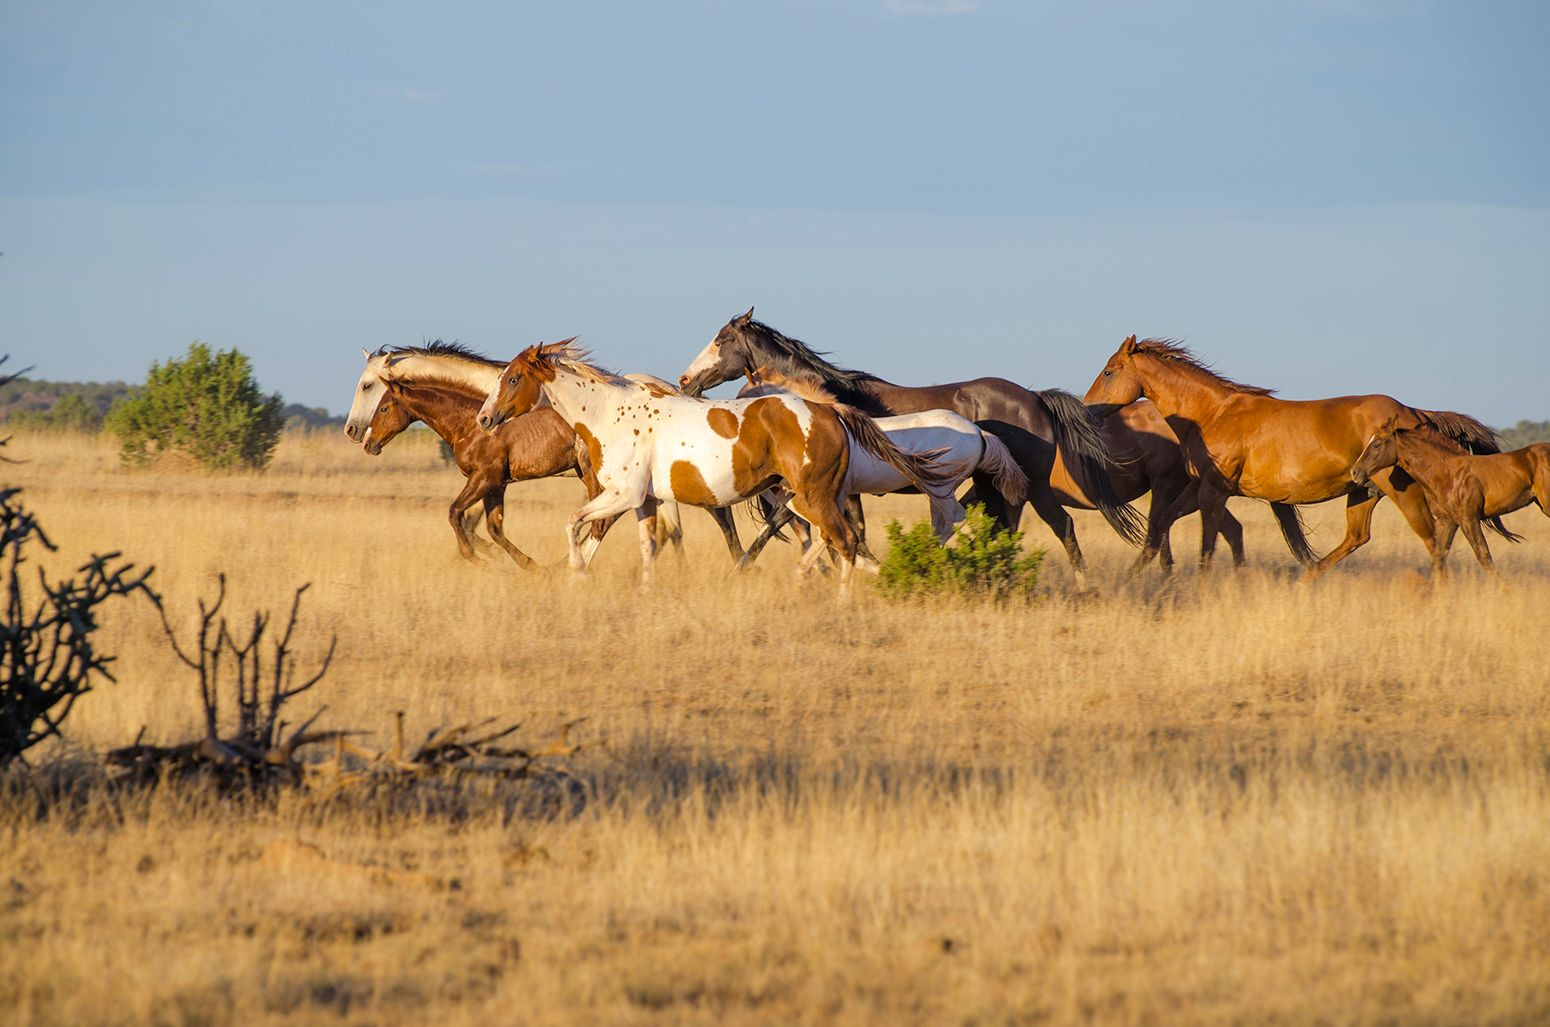 Quarter Horse mares and foals running